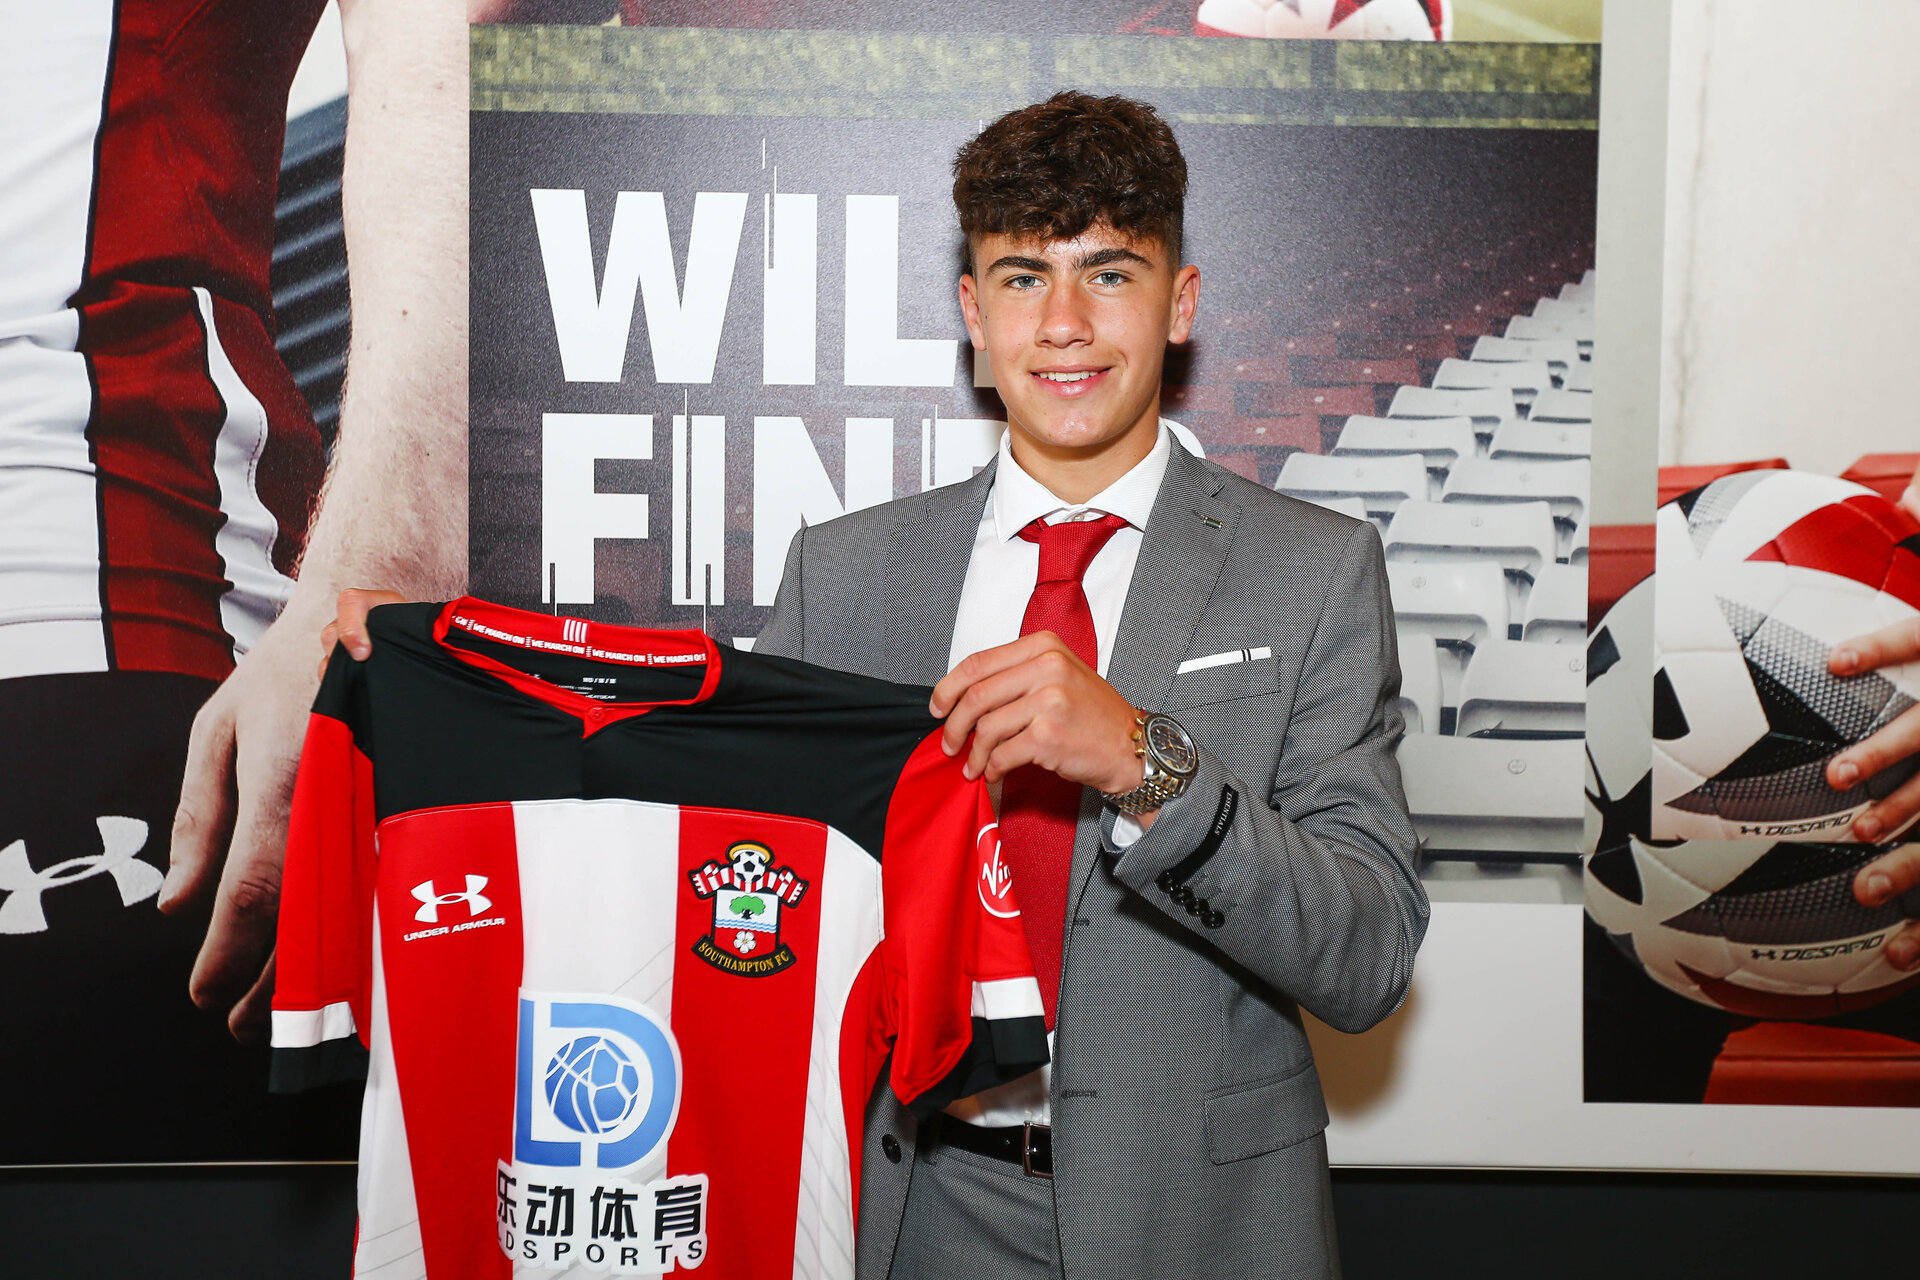 SOUTHAMPTON, ENGLAND - 28 JUNE: Marco Rus (Left) signs as a first year scholar with Southampton FC on June 28, 2018 pictured at St Marys Stadium, Southampton, England. (Photo by James Bridle - Southampton FC/Southampton FC via Getty Images)